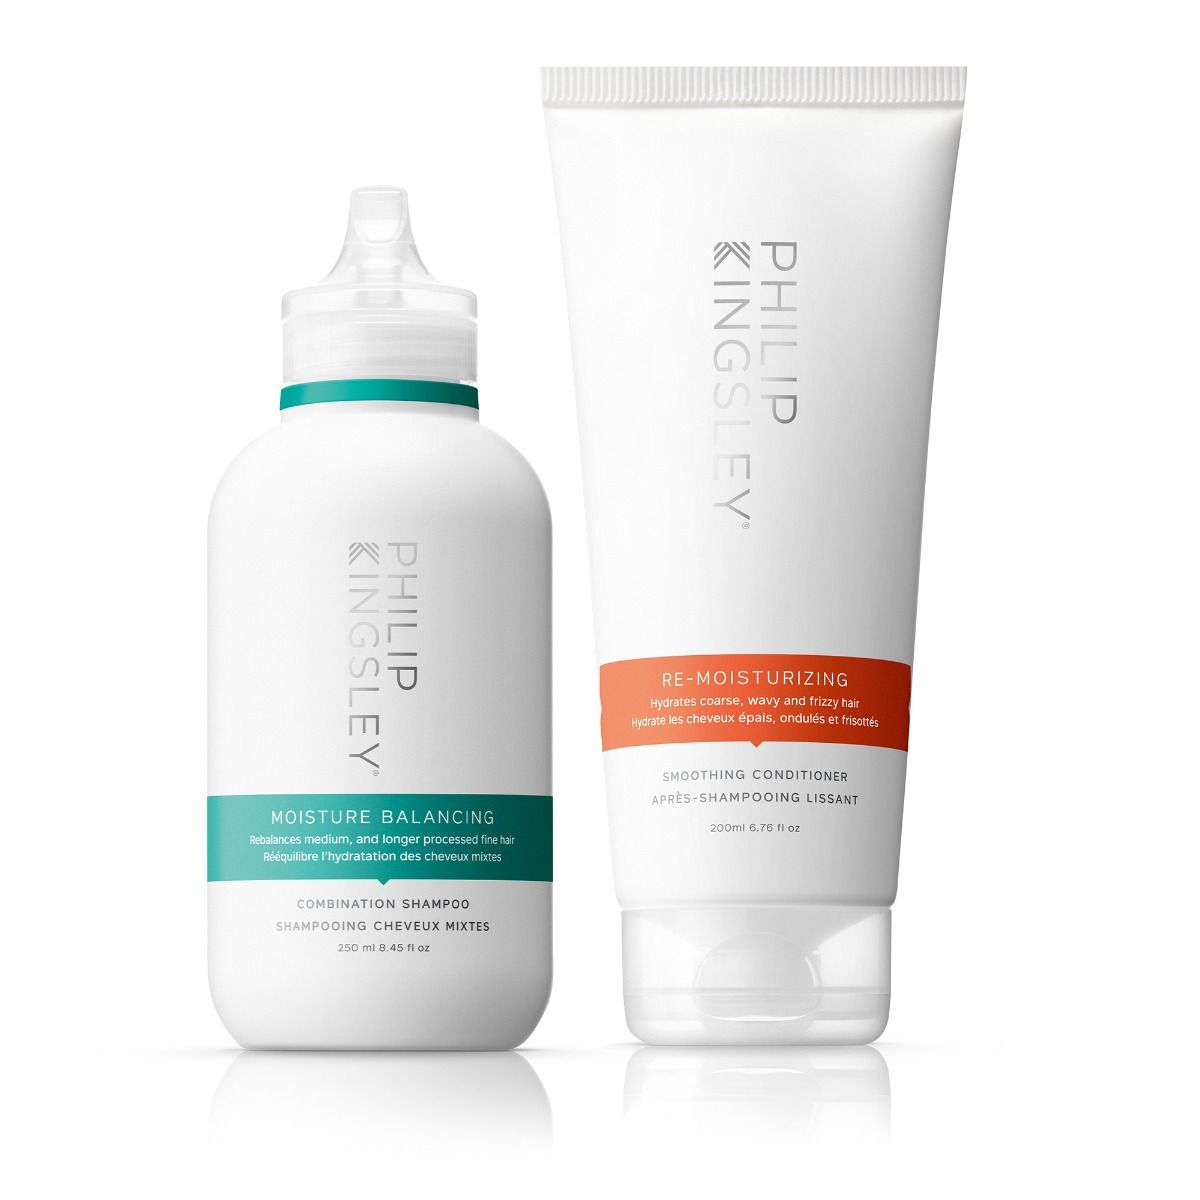 Moisture Balancing Combination Shampoo & Re-Moisturizing Smoothing Conditioner Duo